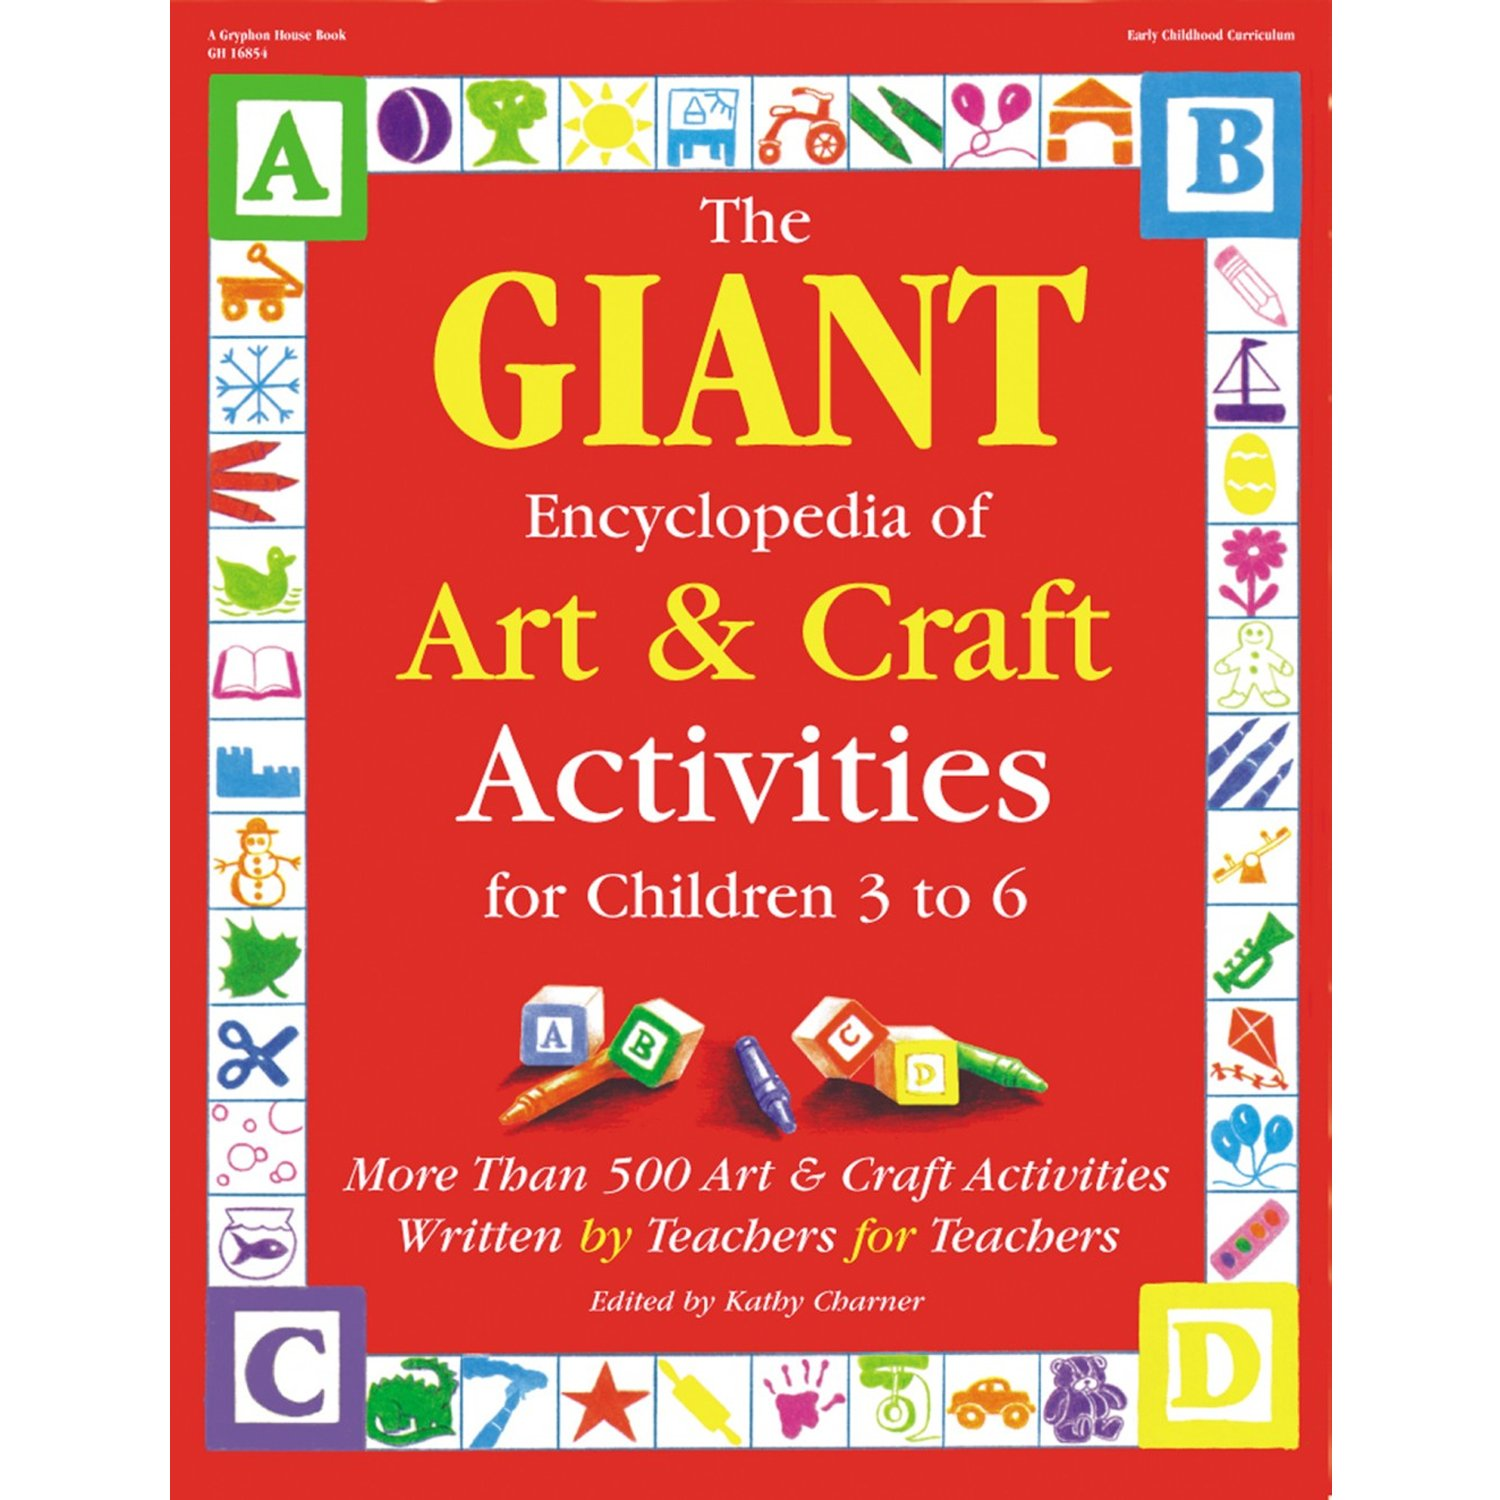 Image OfThe GIANT Encyclopedia Of Art & Craft Activities For Children 3 To 6: More Than 500 Art & Craft Activities Written By Teac...